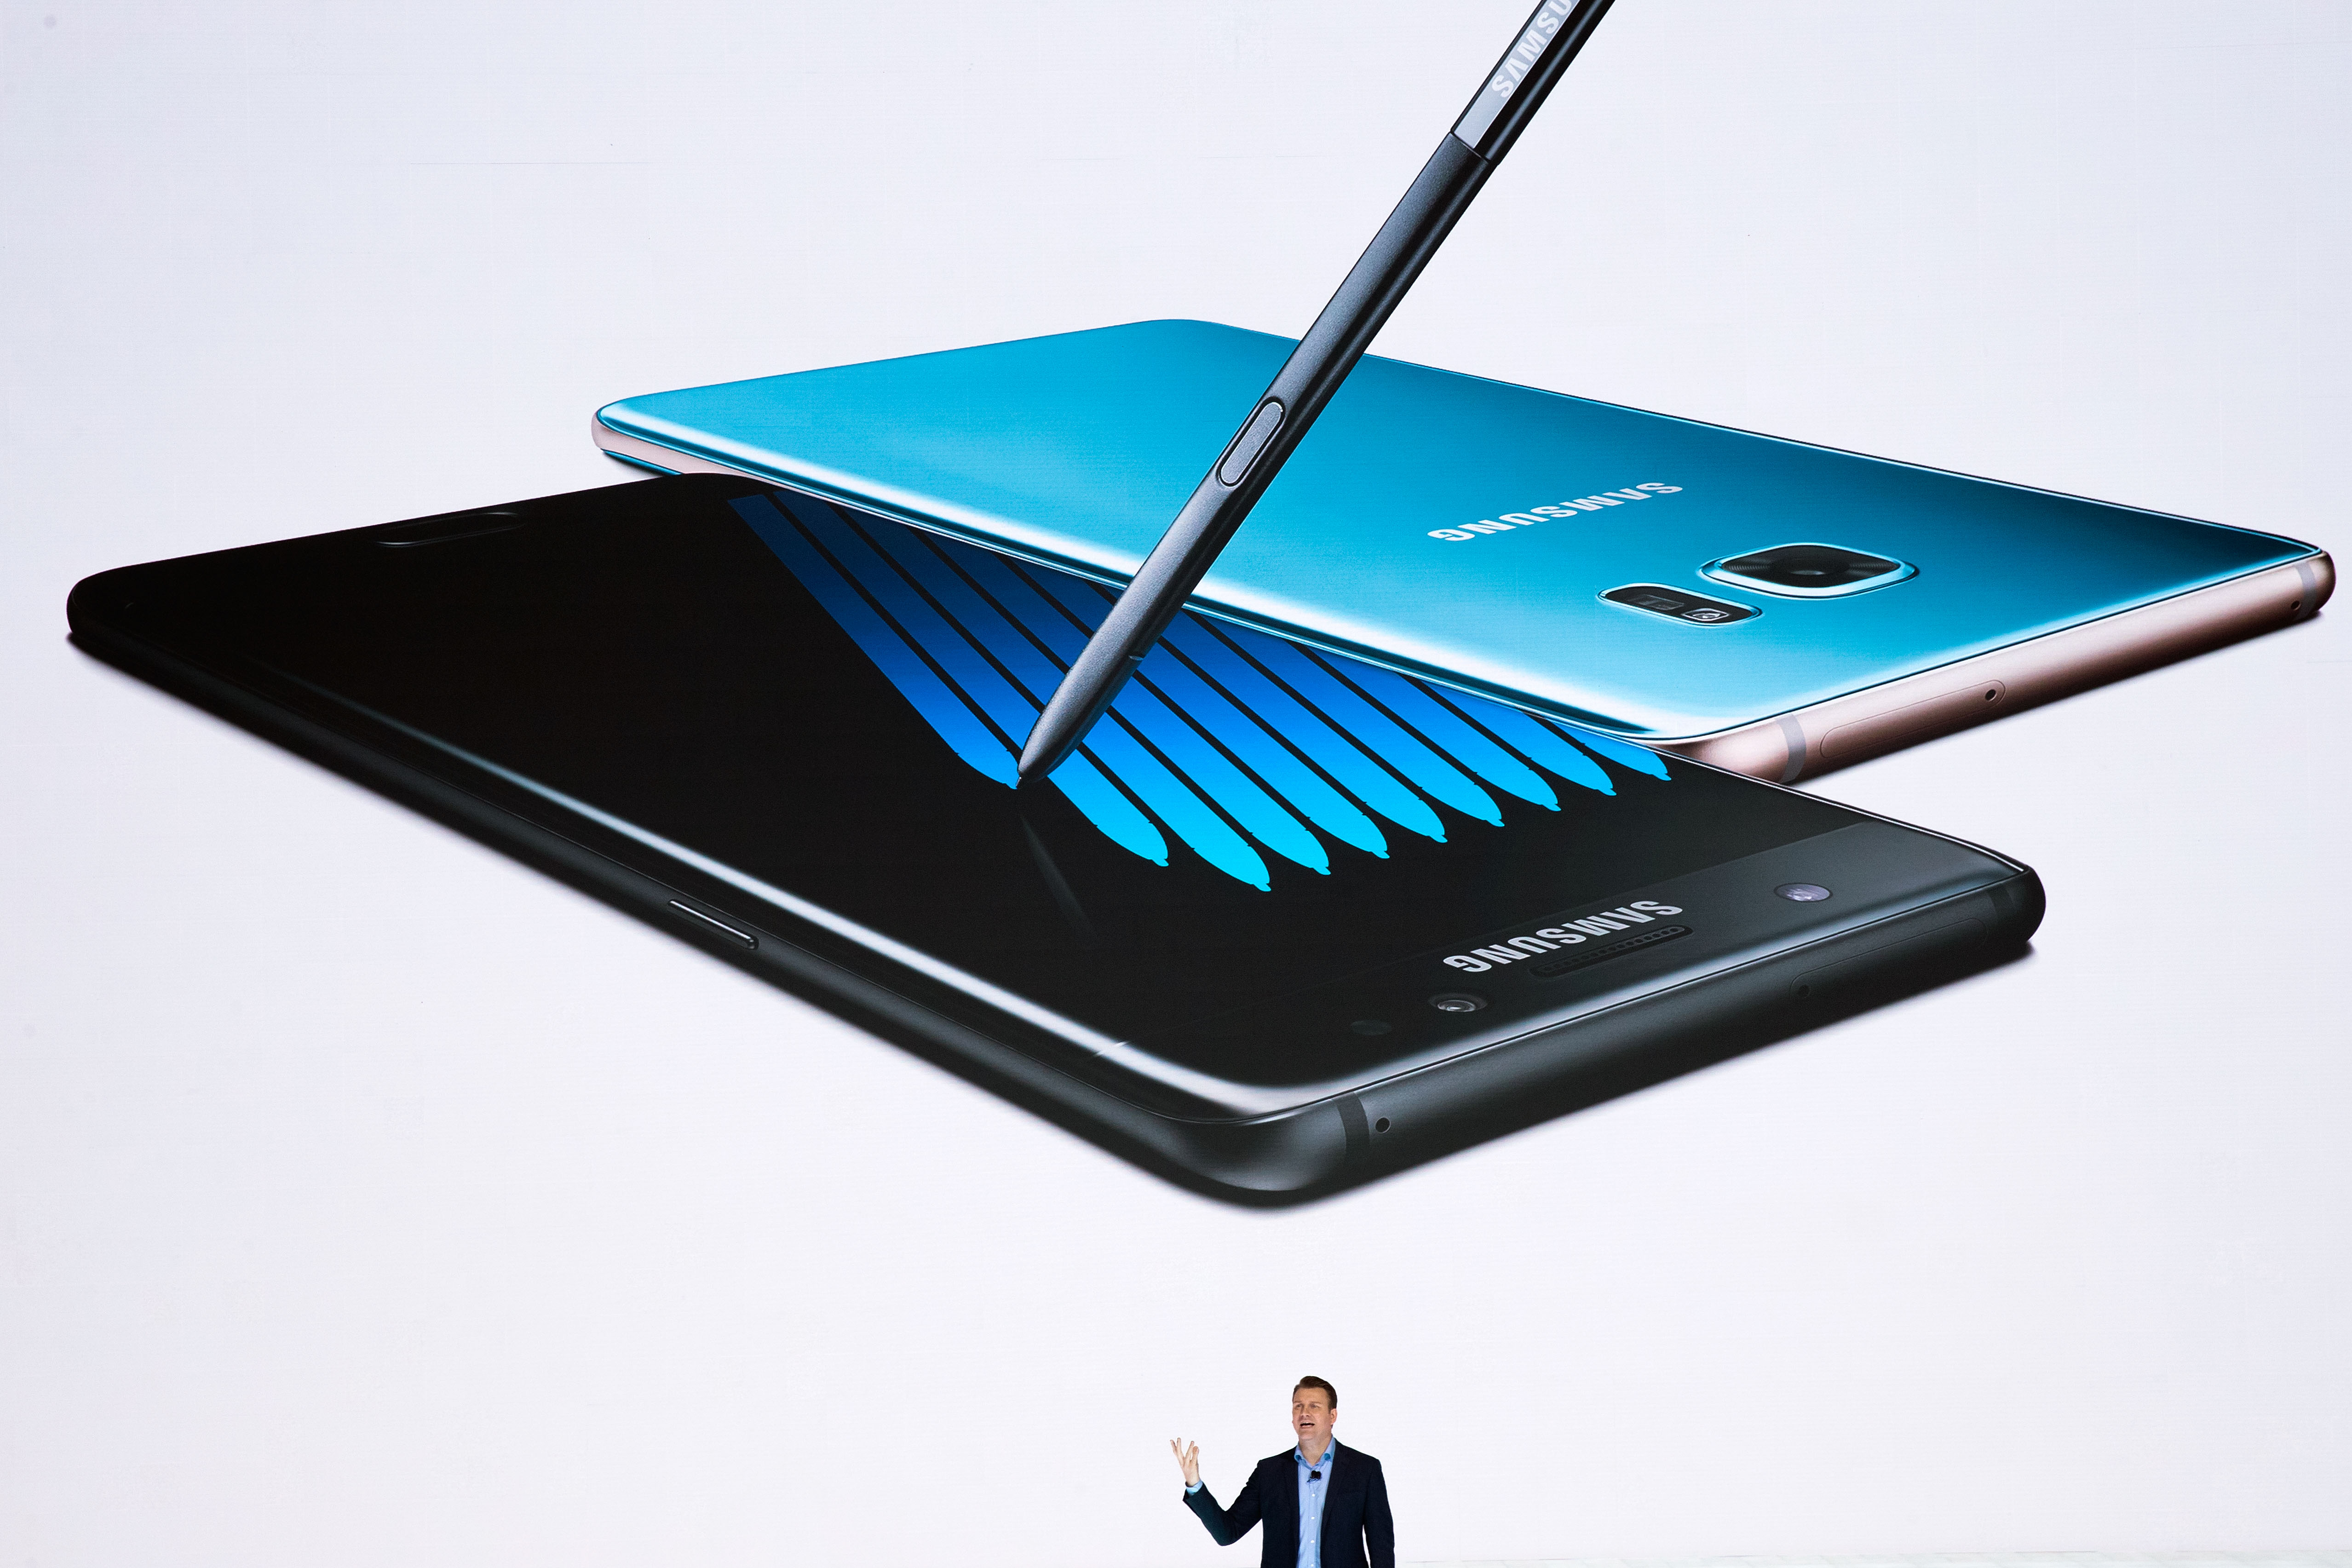 Justin Denison, senior vice president of product strategy at Samsung, speaks during a launch event for the Samsung Galaxy Note 7 at the Hammerstein Ballroom, August 2, 2016 in New York City.